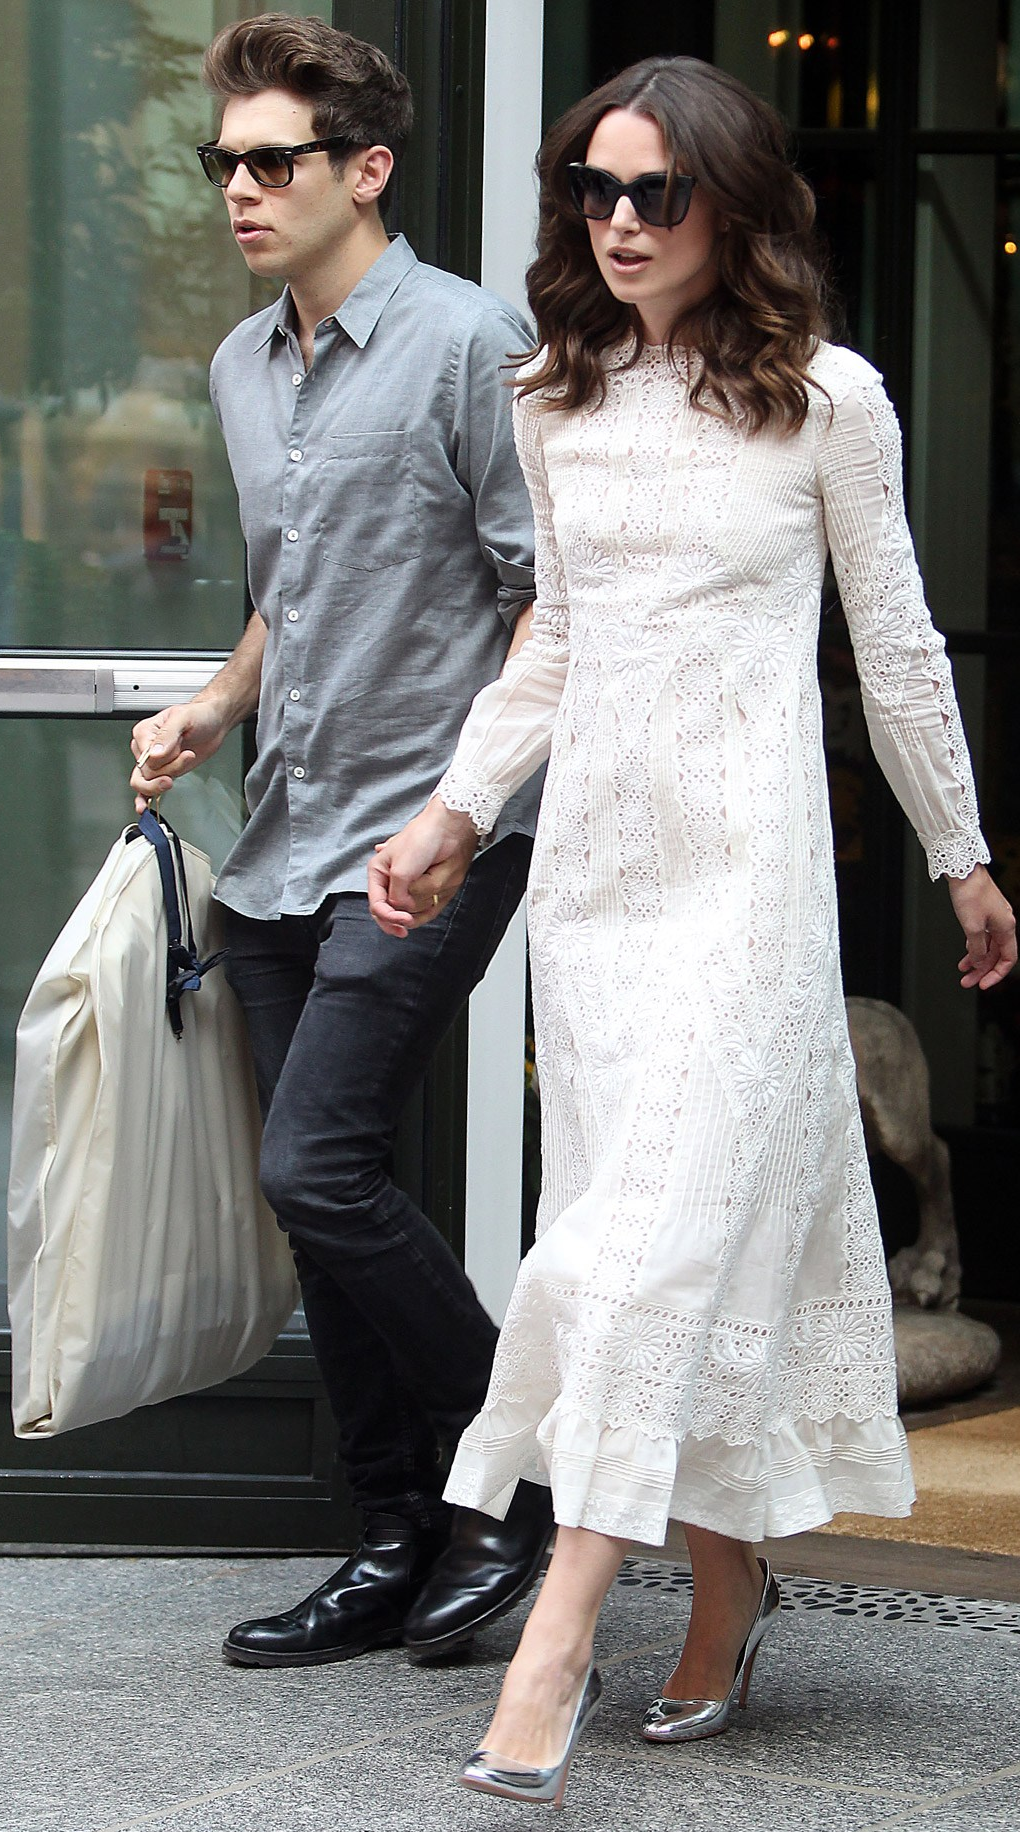 Keira Knightley, joined by husband James Righton, wearing a Valentino pre-spring/summer 2015 dress and silver shoes.